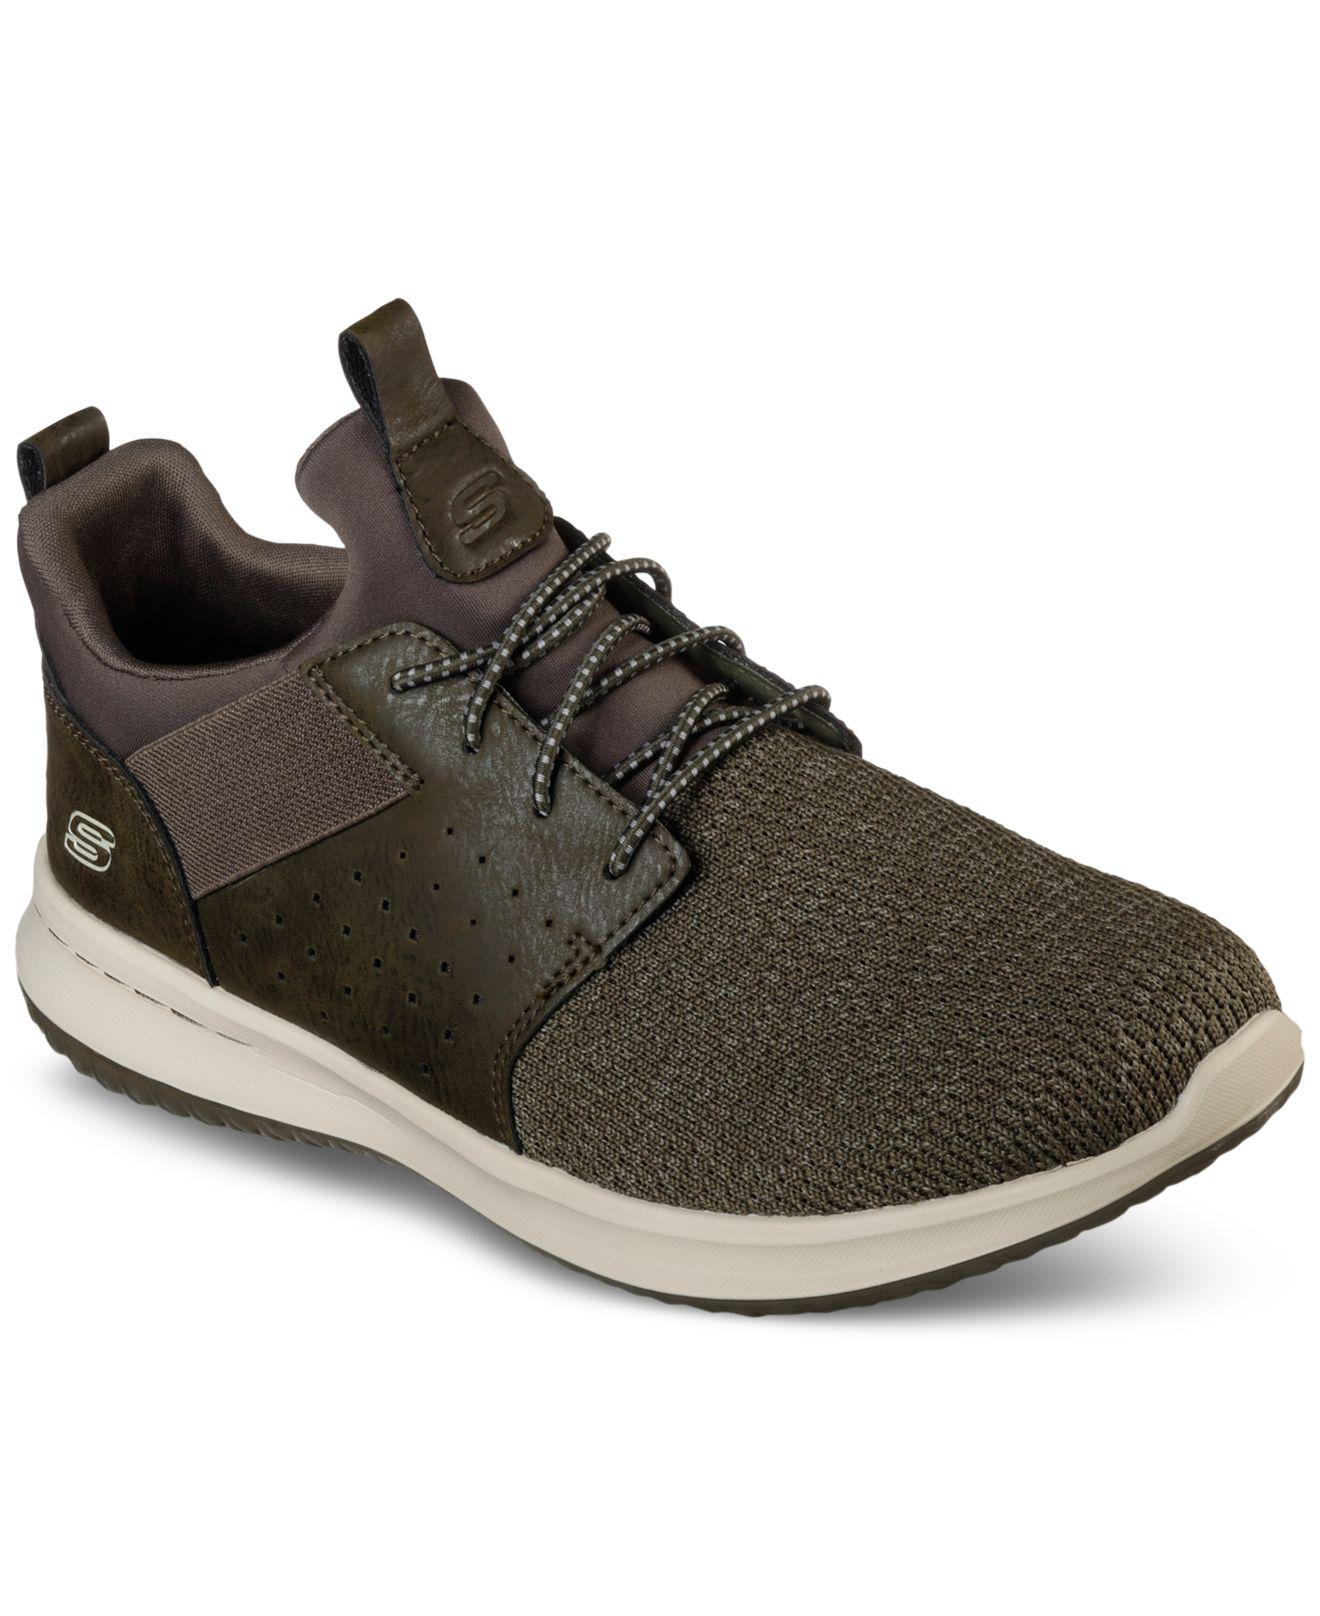 free shipping fake Skechers Delson Brant Men's ... Shoes high quality online outlet store Locations buy cheap outlet store Intg2